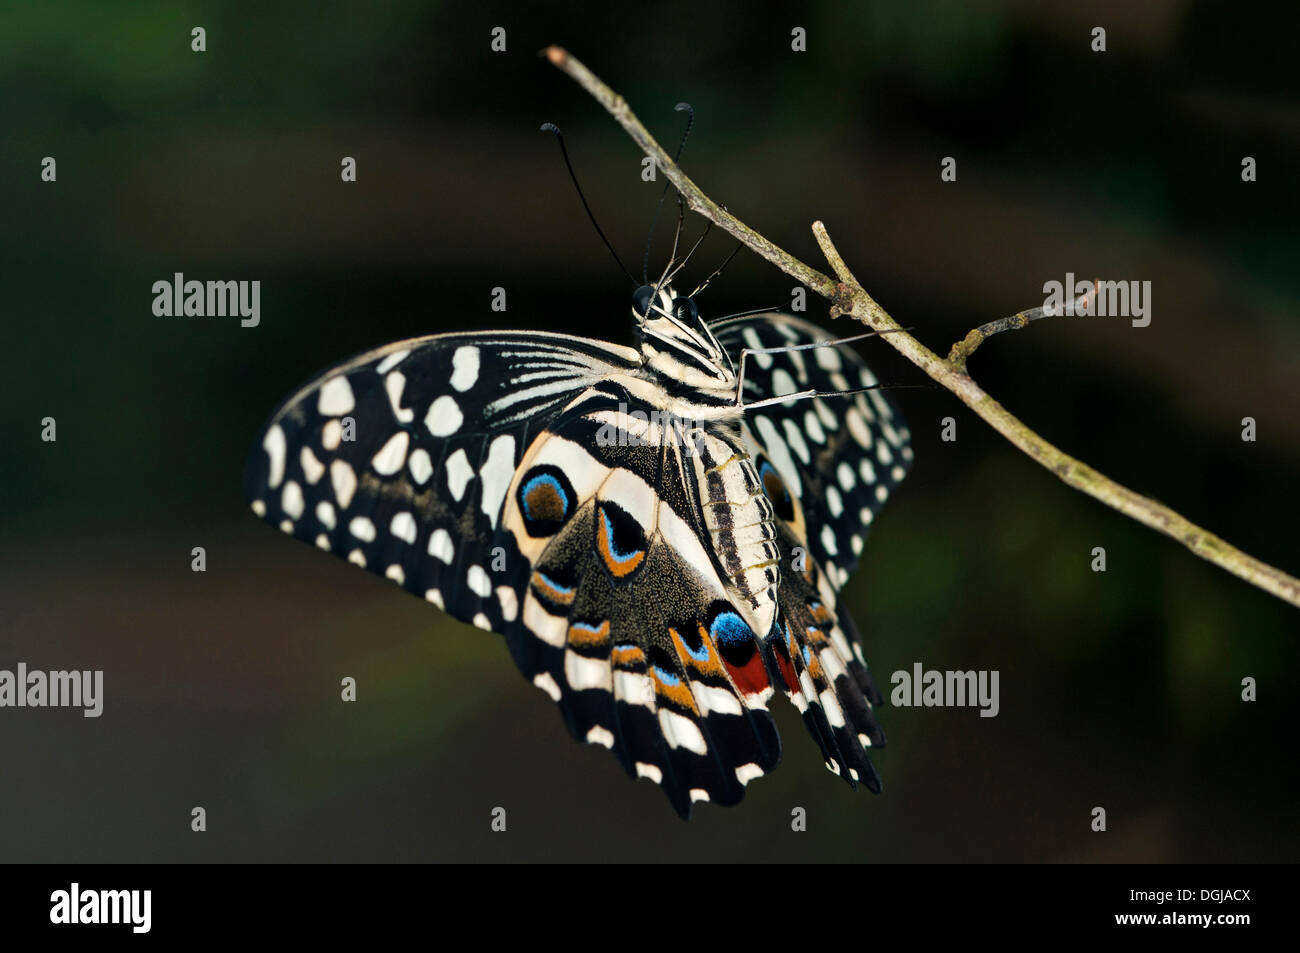 Citrus Swallowtail (Papilio demodocus), tropical butterfly, Afrika, South Africa - Stock Image